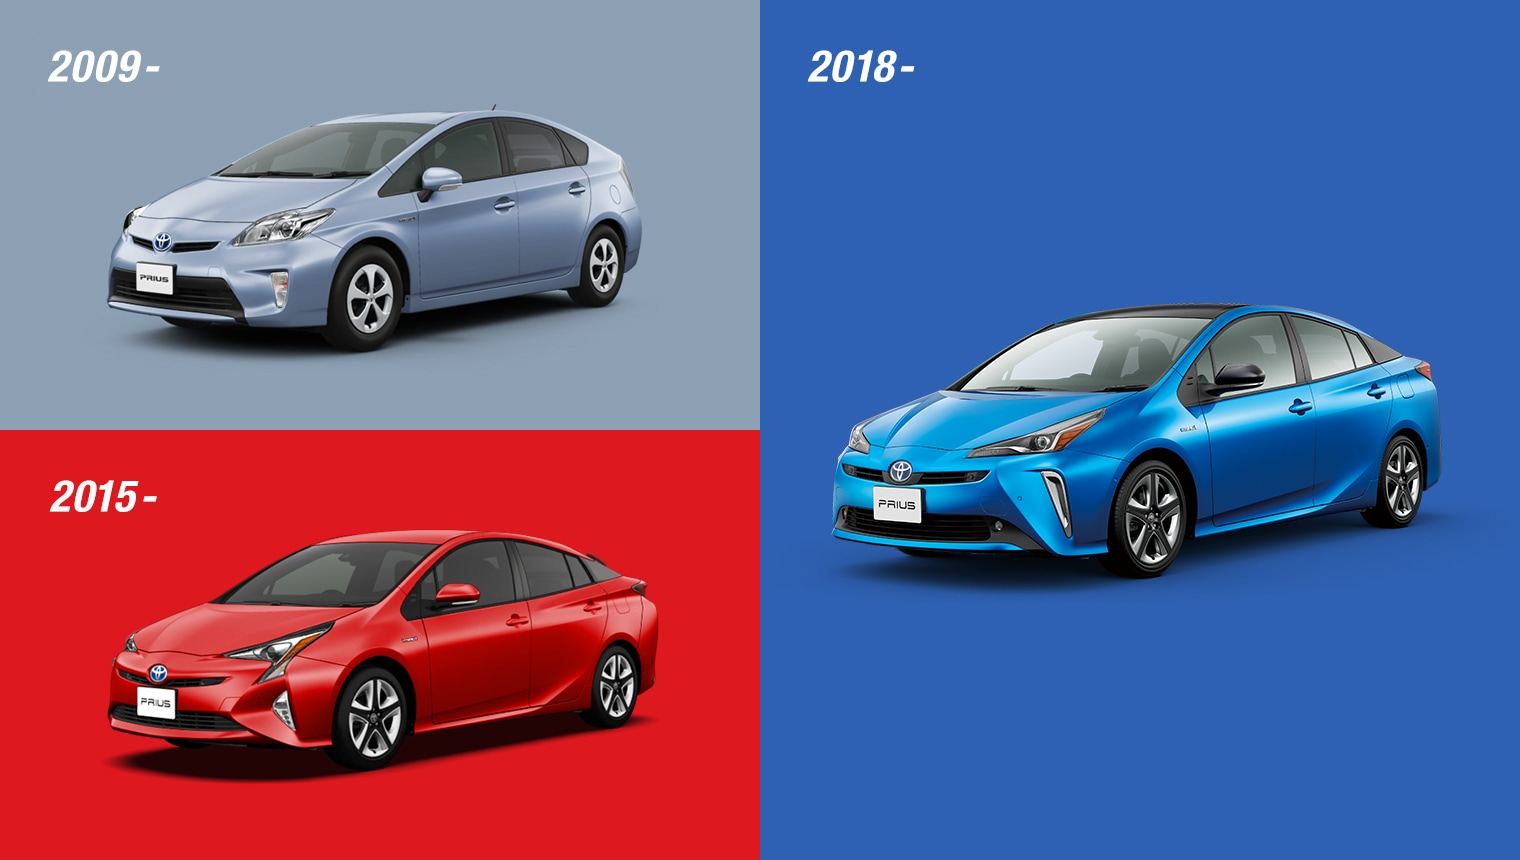 https://toyota.jp/pages/contents/prius/004_p_007/image/compare/compare_design_front@2x.jpg